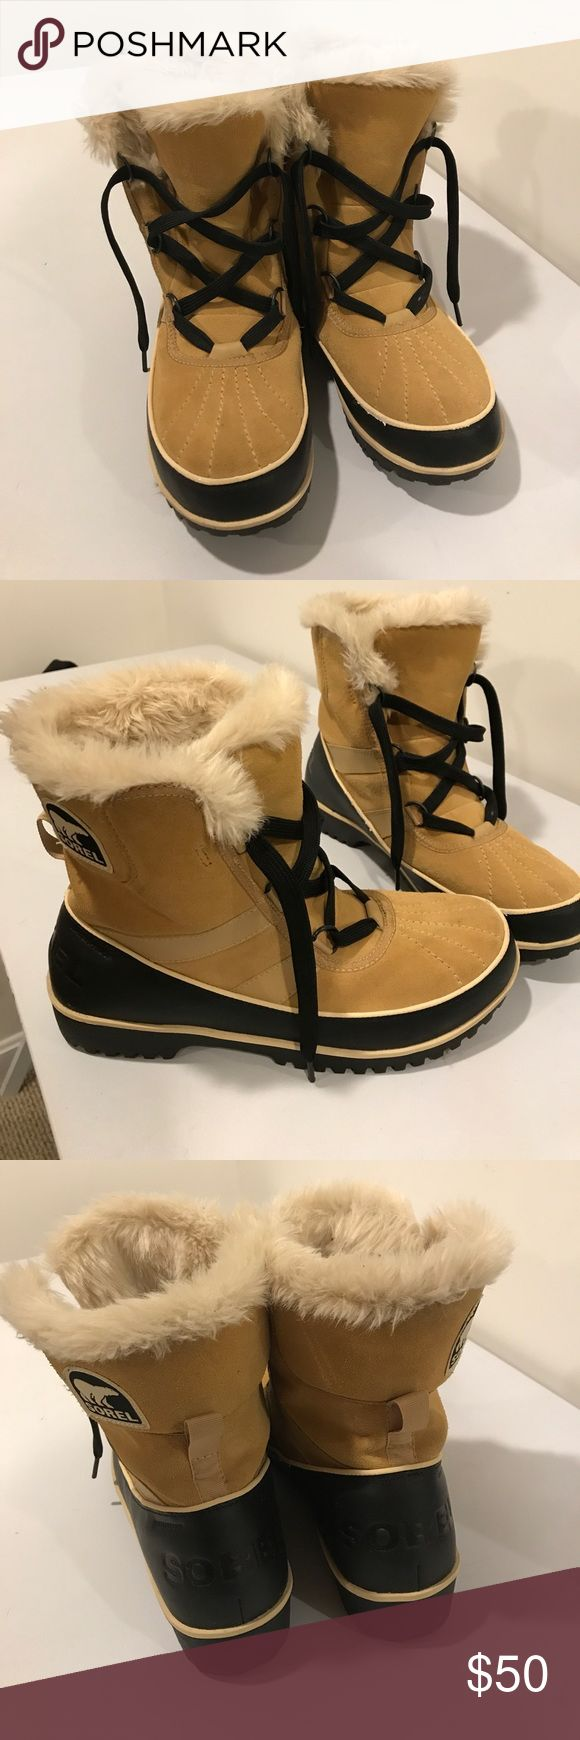 Sorel winter boots These are very warm used a few times and have no damage. These are very warm and offer a snug fit for snow days or chilly days. I offer a 15% discount on bundel items 2 or more.😊 Sorel Shoes Winter & Rain Boots